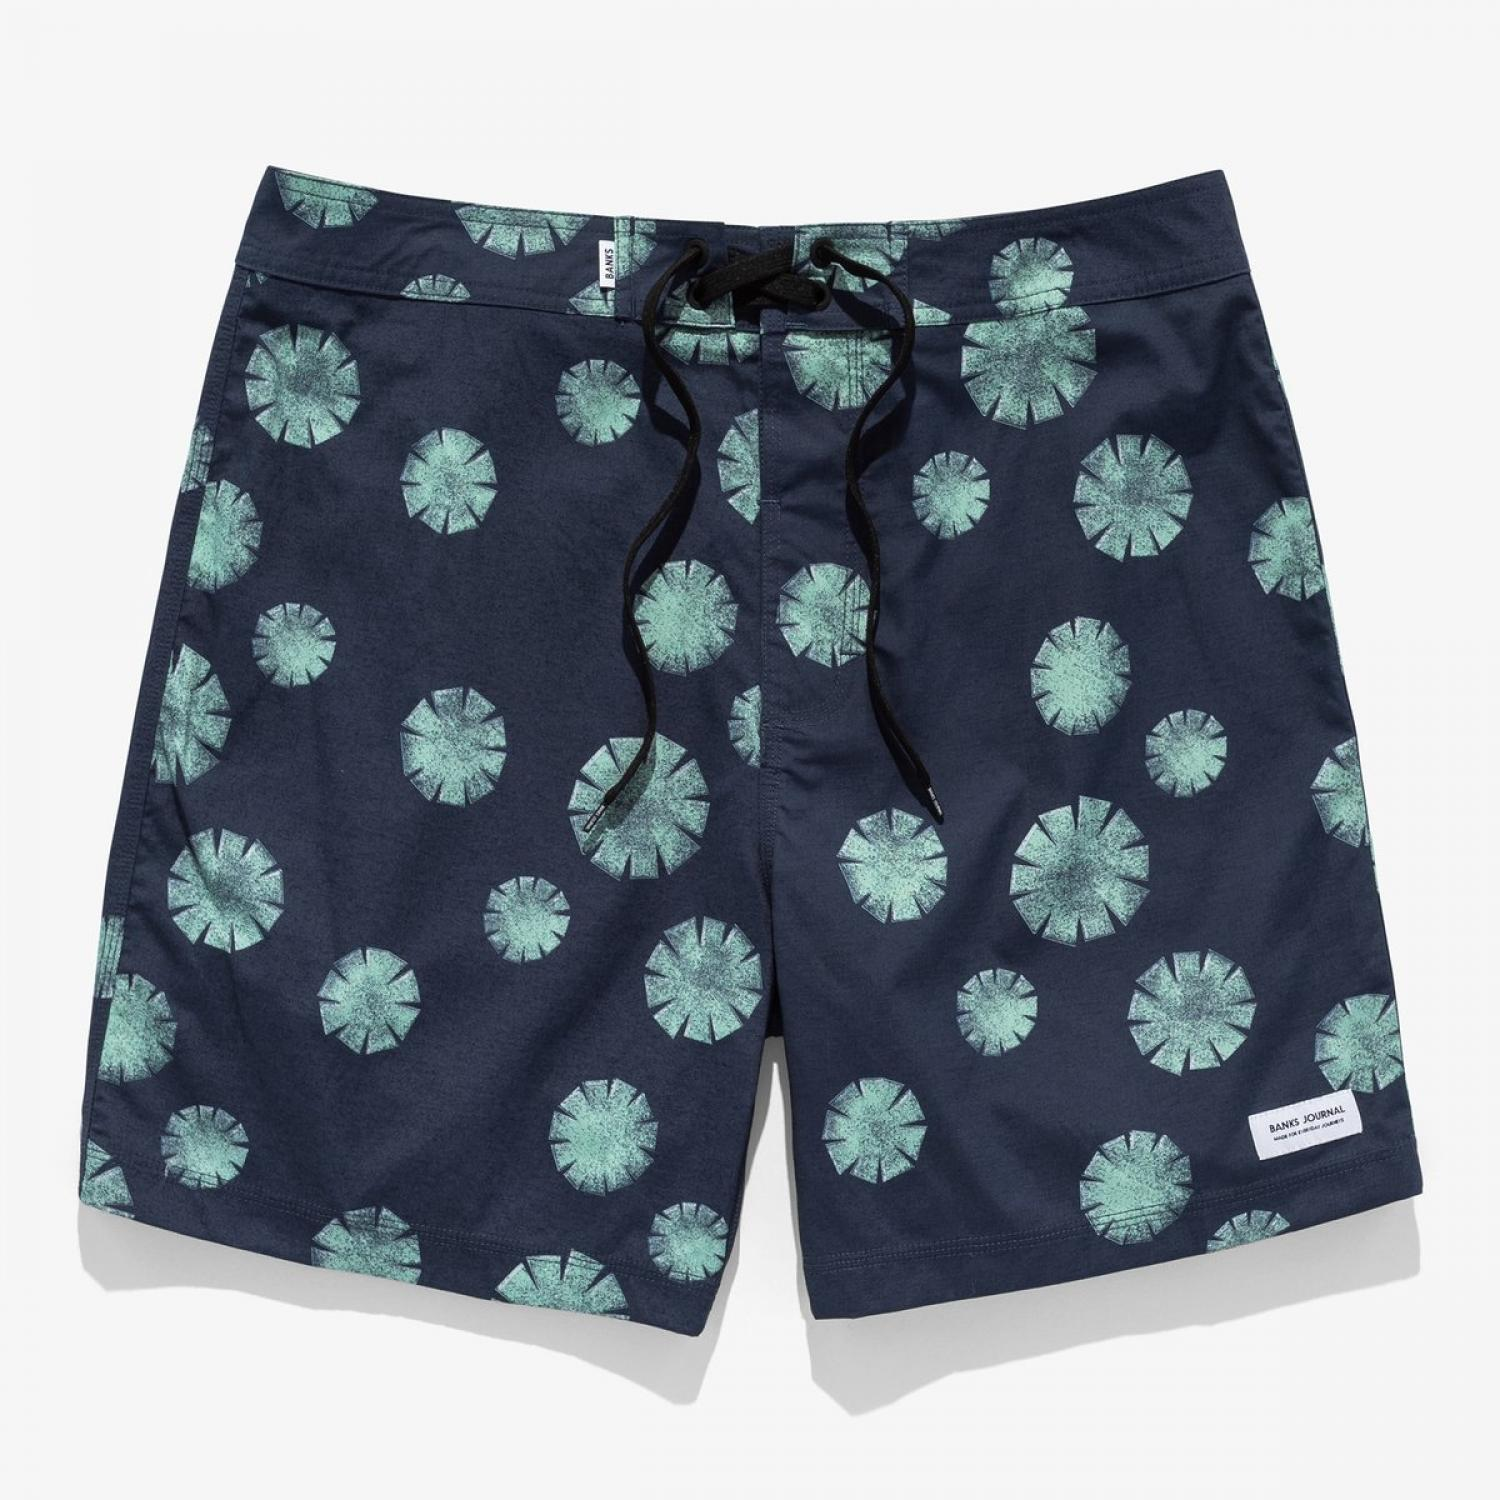 BANKS JOURNAL VENTURA BOARDSHORT 17inch